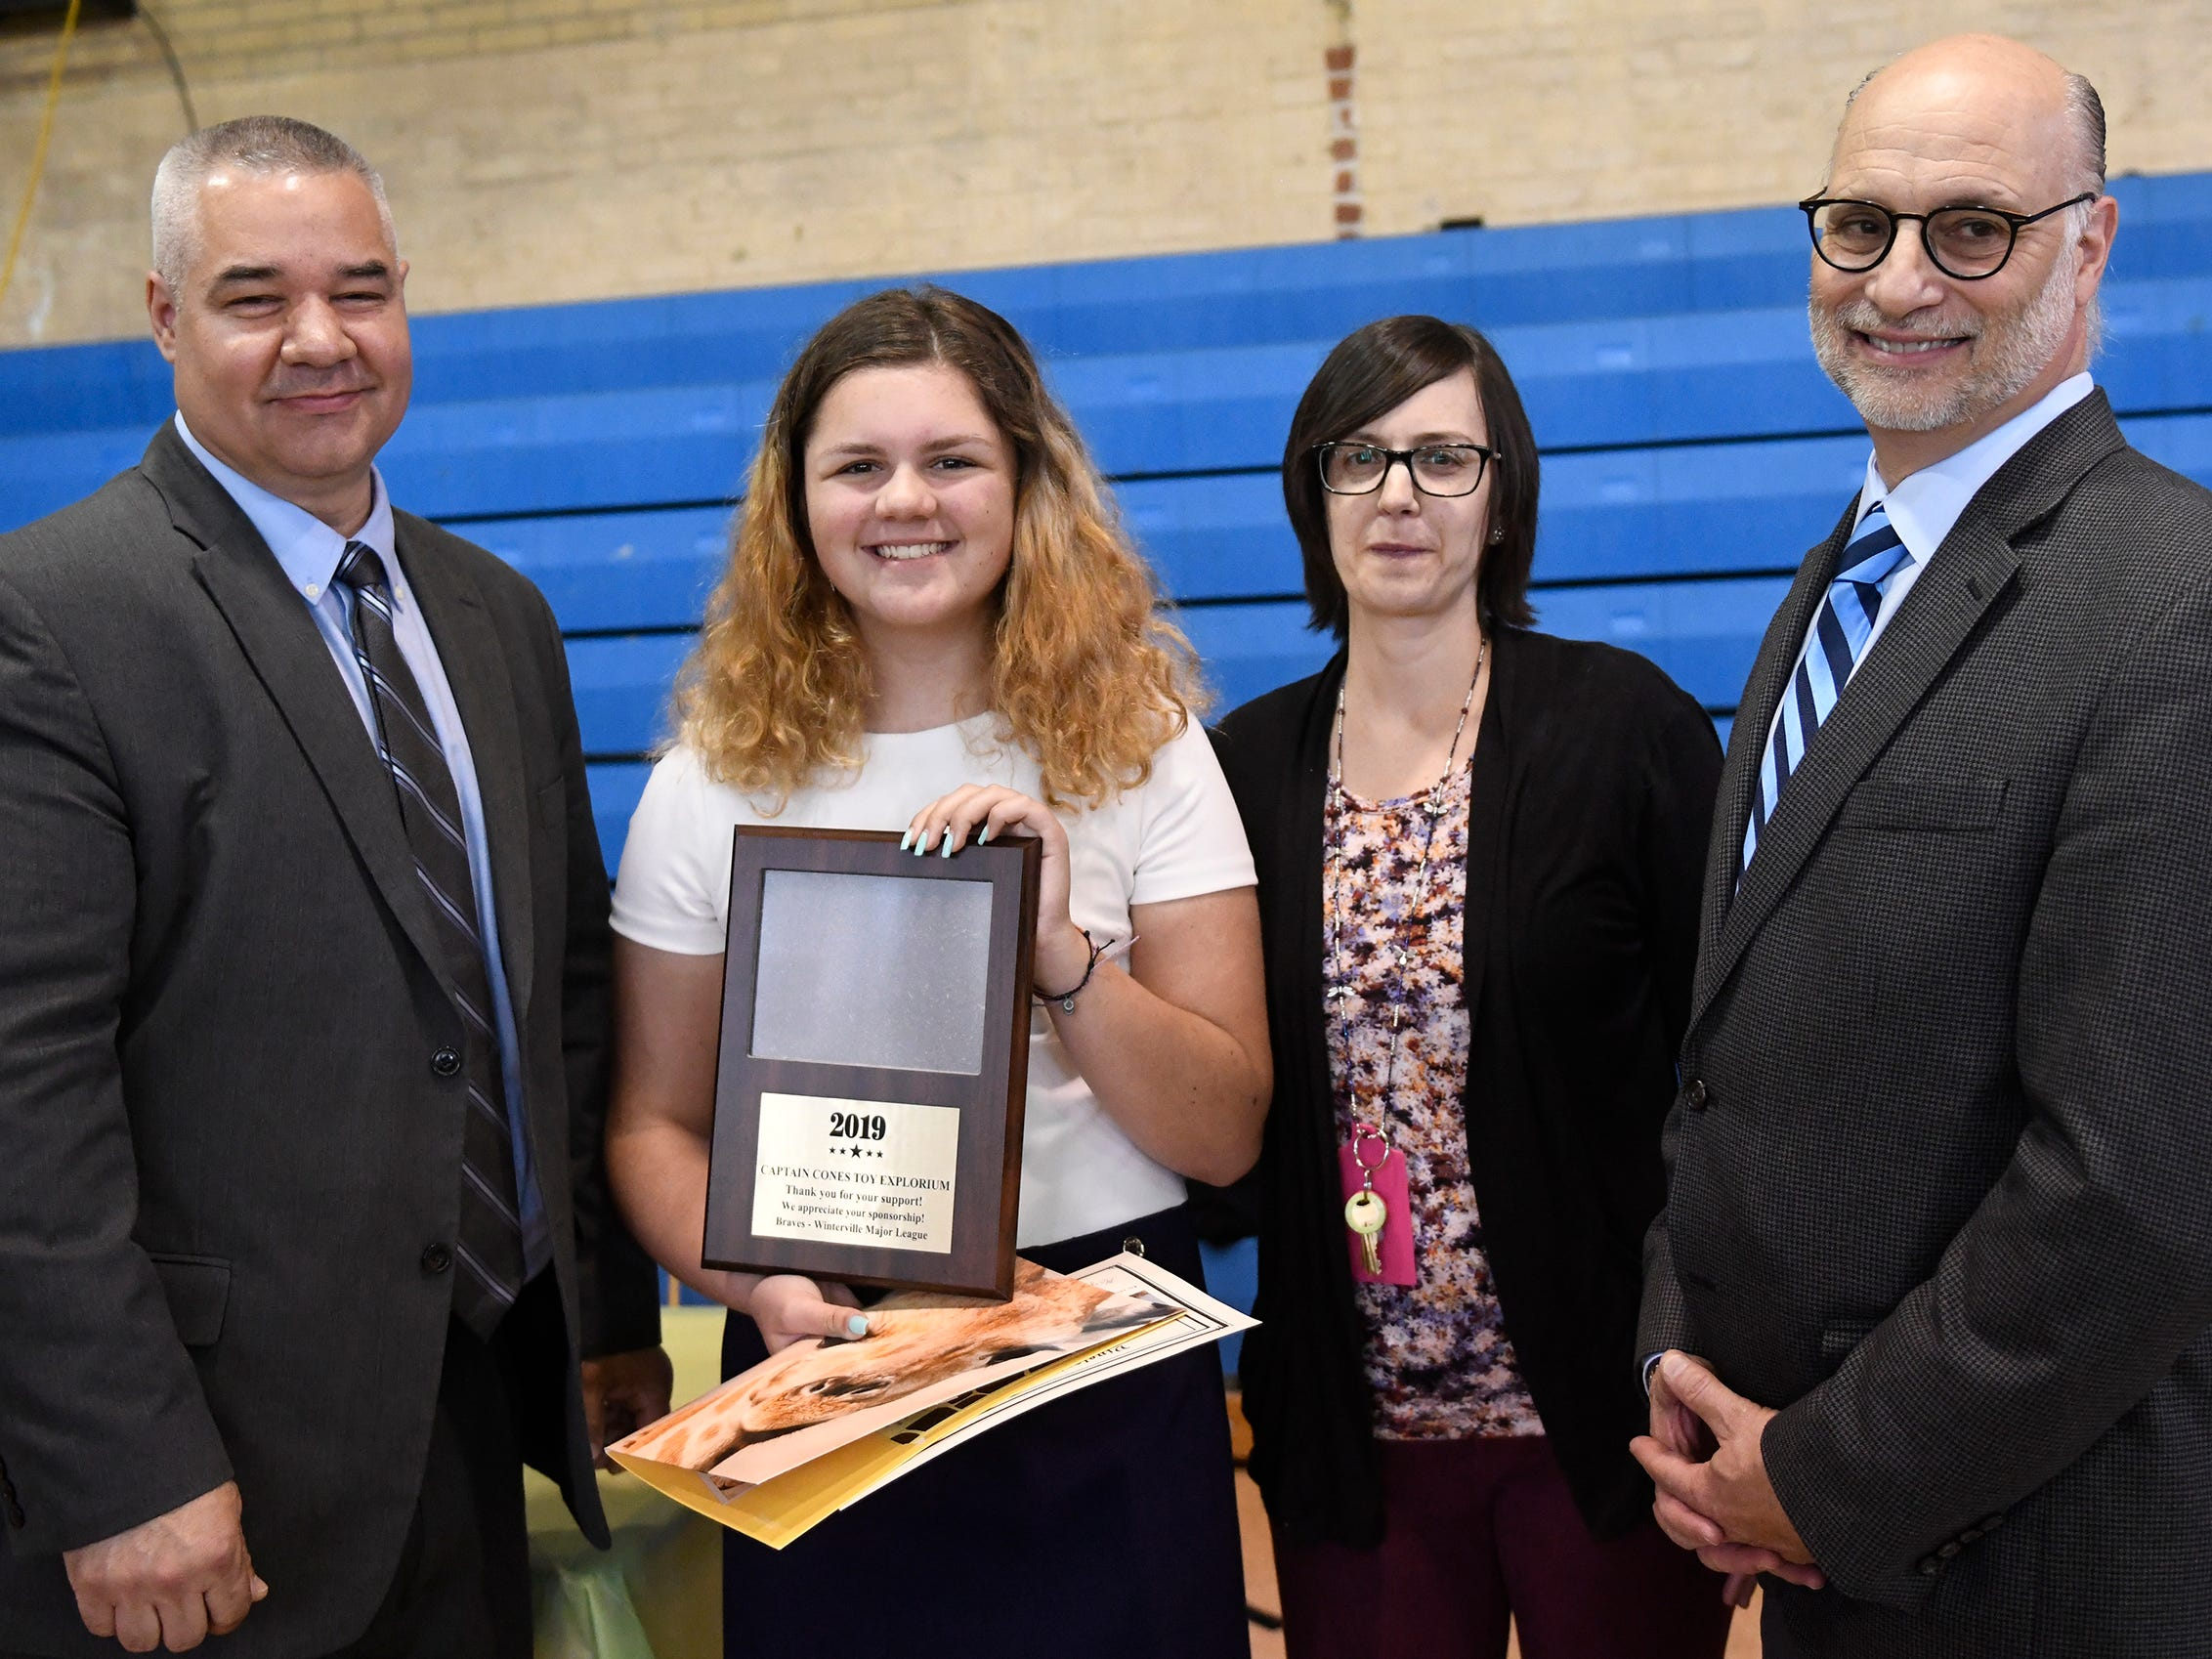 Johnstone Elementary School student Sofia Amato was presented with a Giraffe Hero Award during a special ceremony on Wednesday, May 15, 2019.